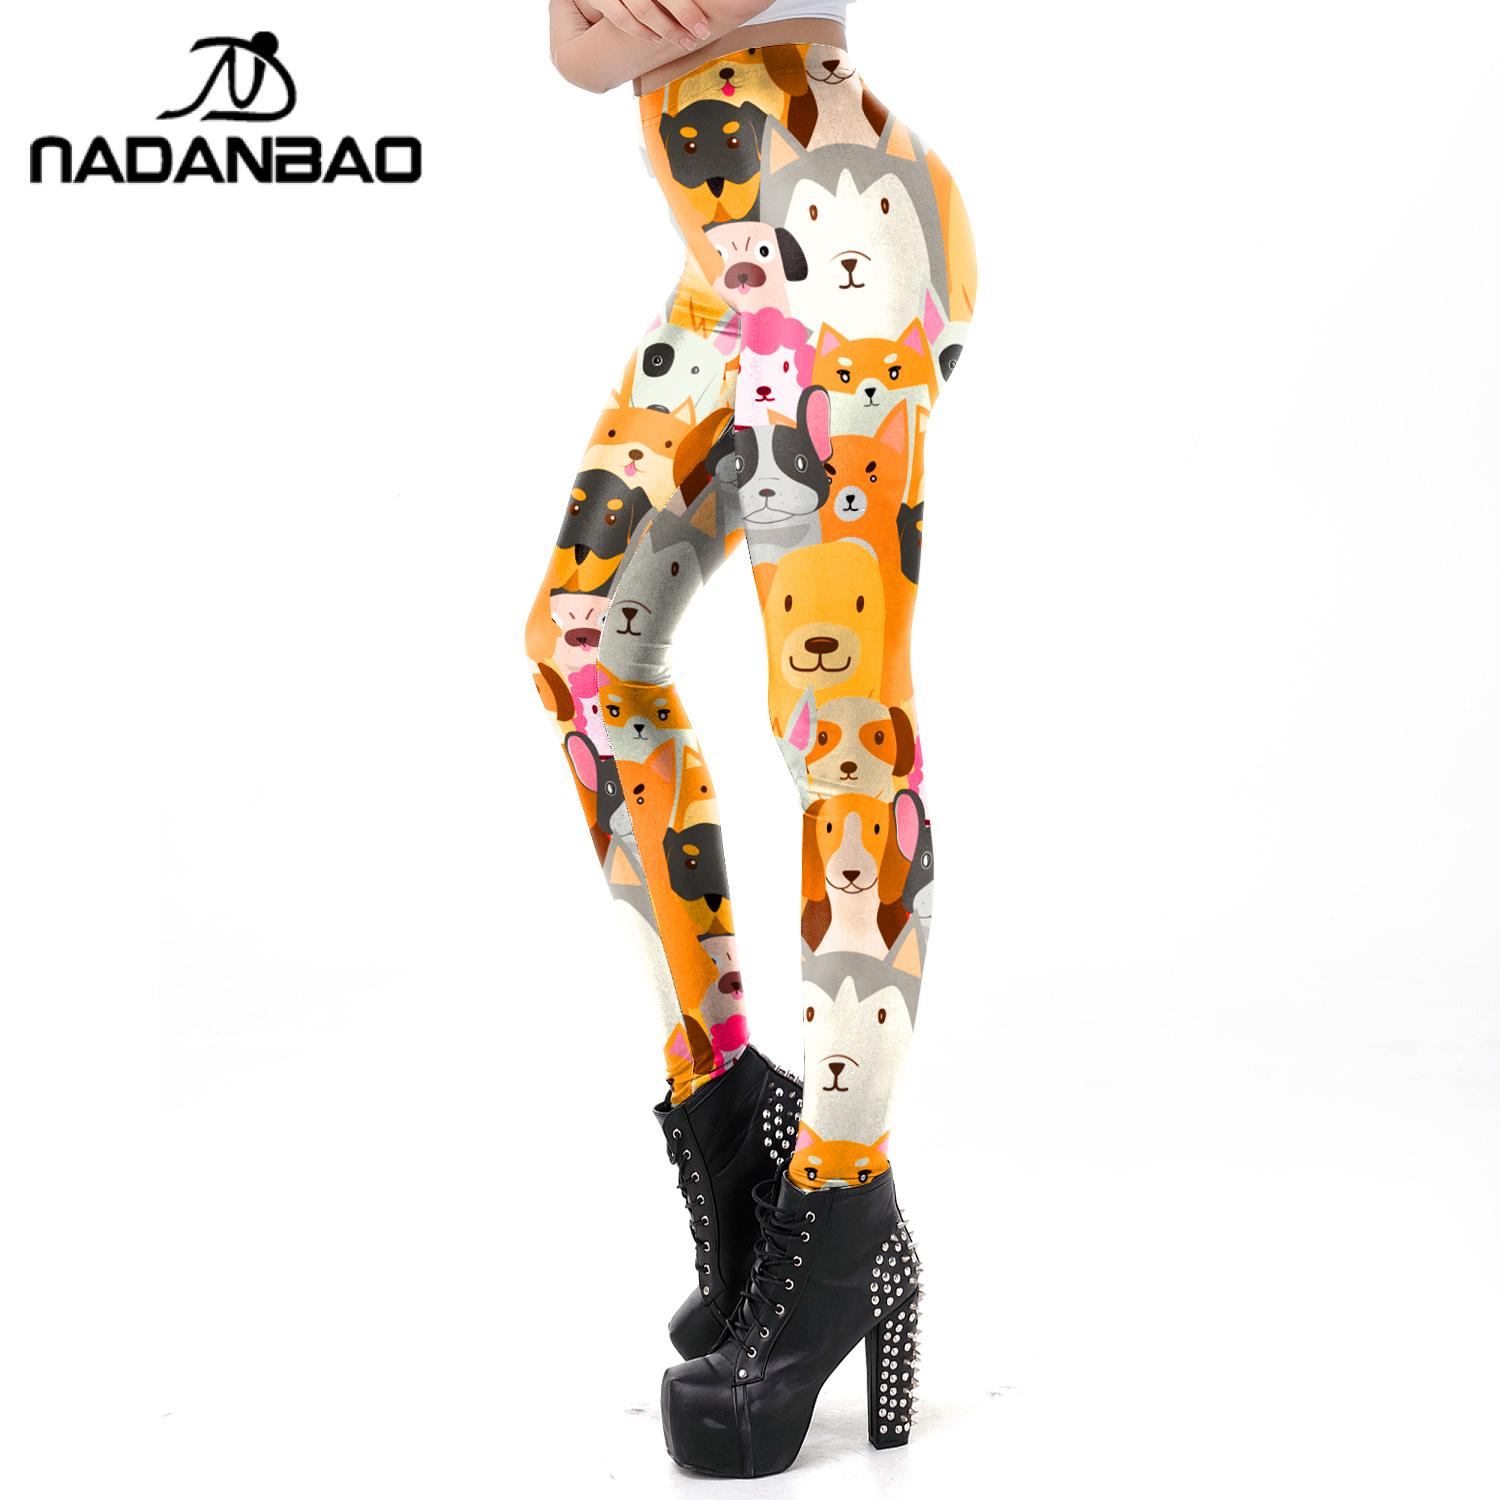 NADANBAO Fashion Cute Dog Digital Printed Leggings Women Elastic Leggings High Waist 3D Animals Trousers Movement Legins